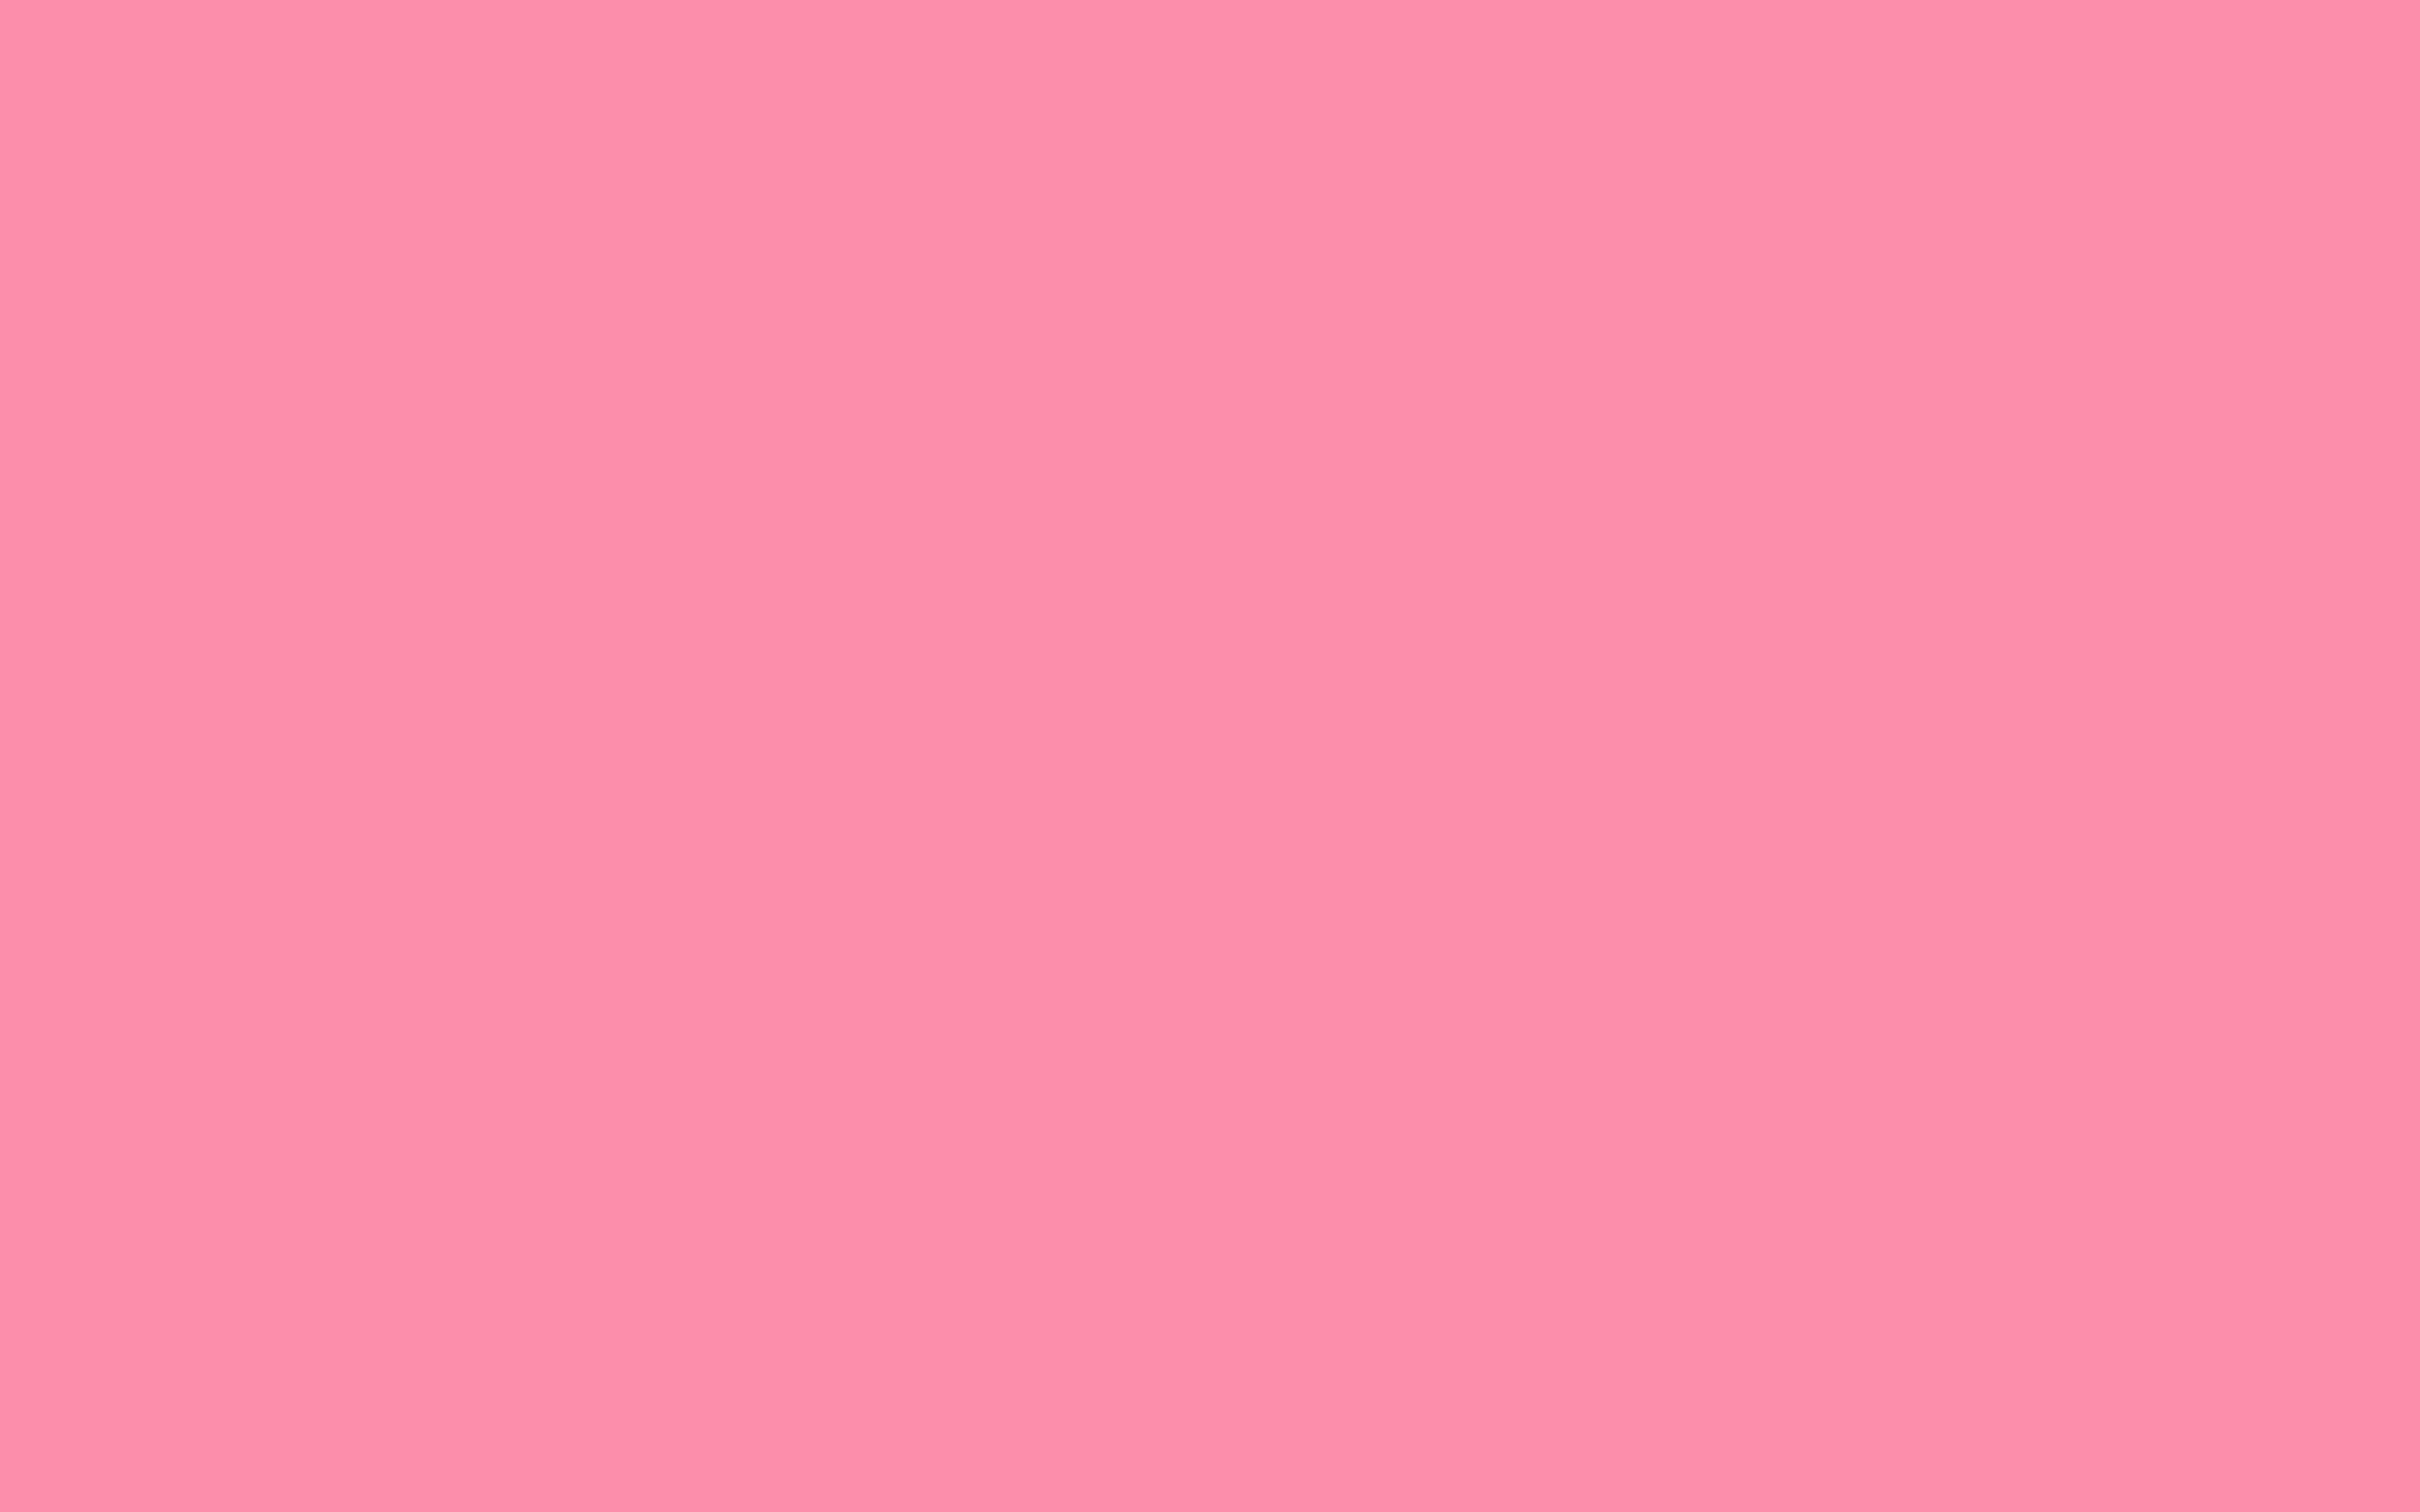 2880x1800 Flamingo Pink Solid Color Background